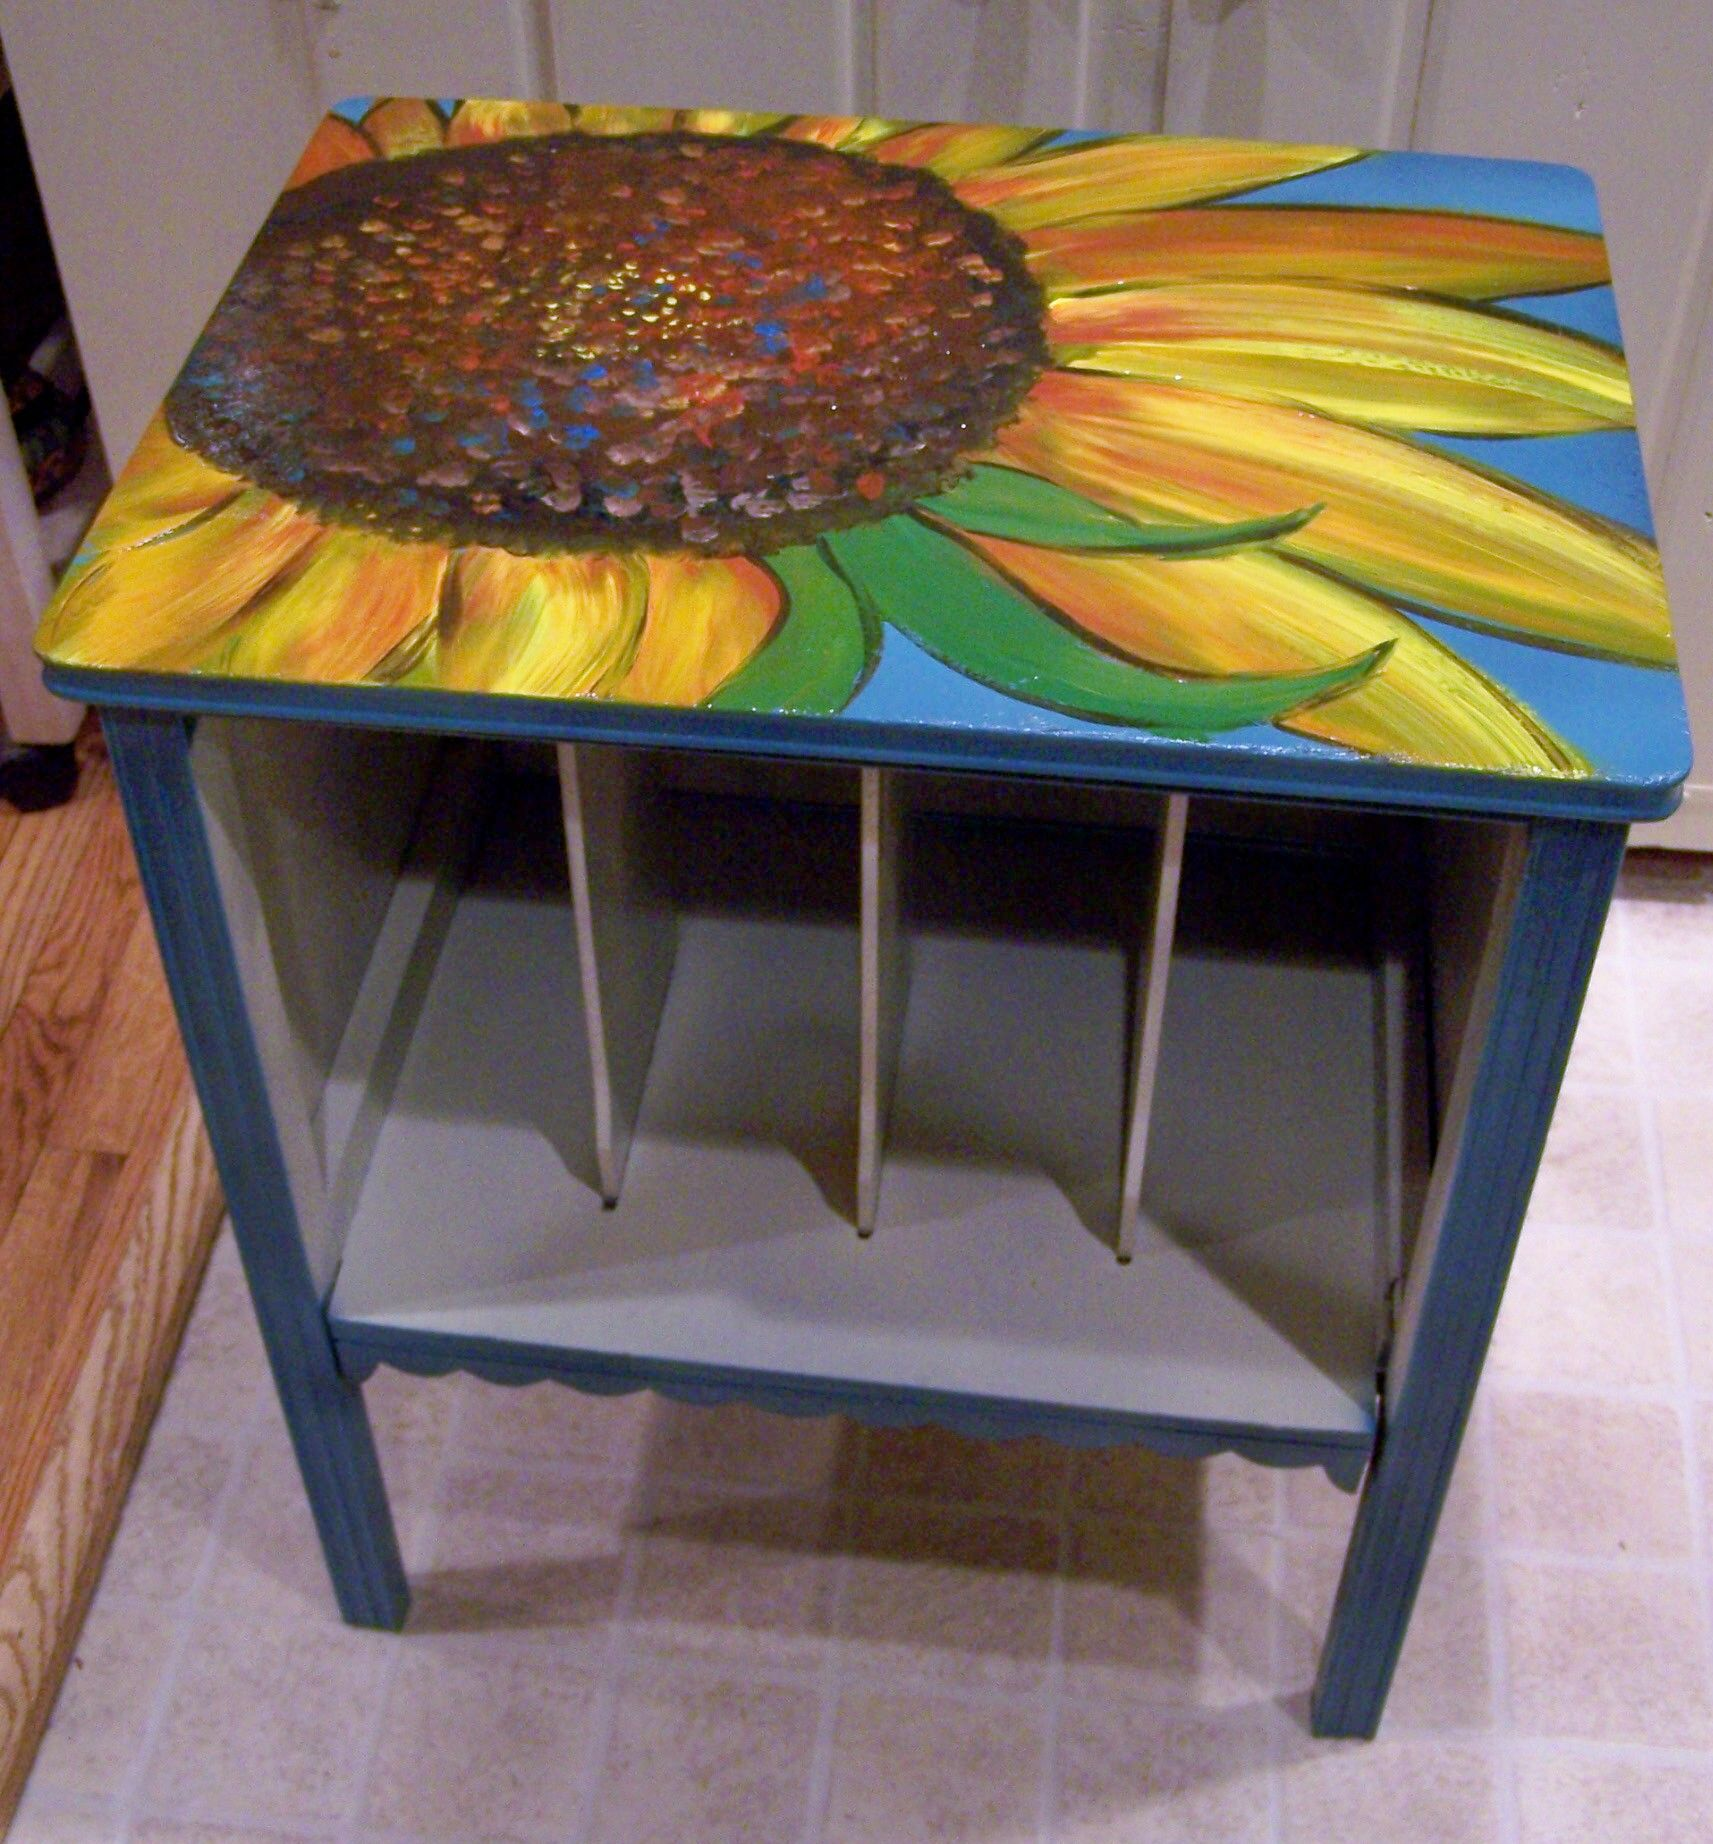 Cool chair paint designs - Pinterest Painting Furniture Ideas Experimenting With Different Designs And Ideas For Painted